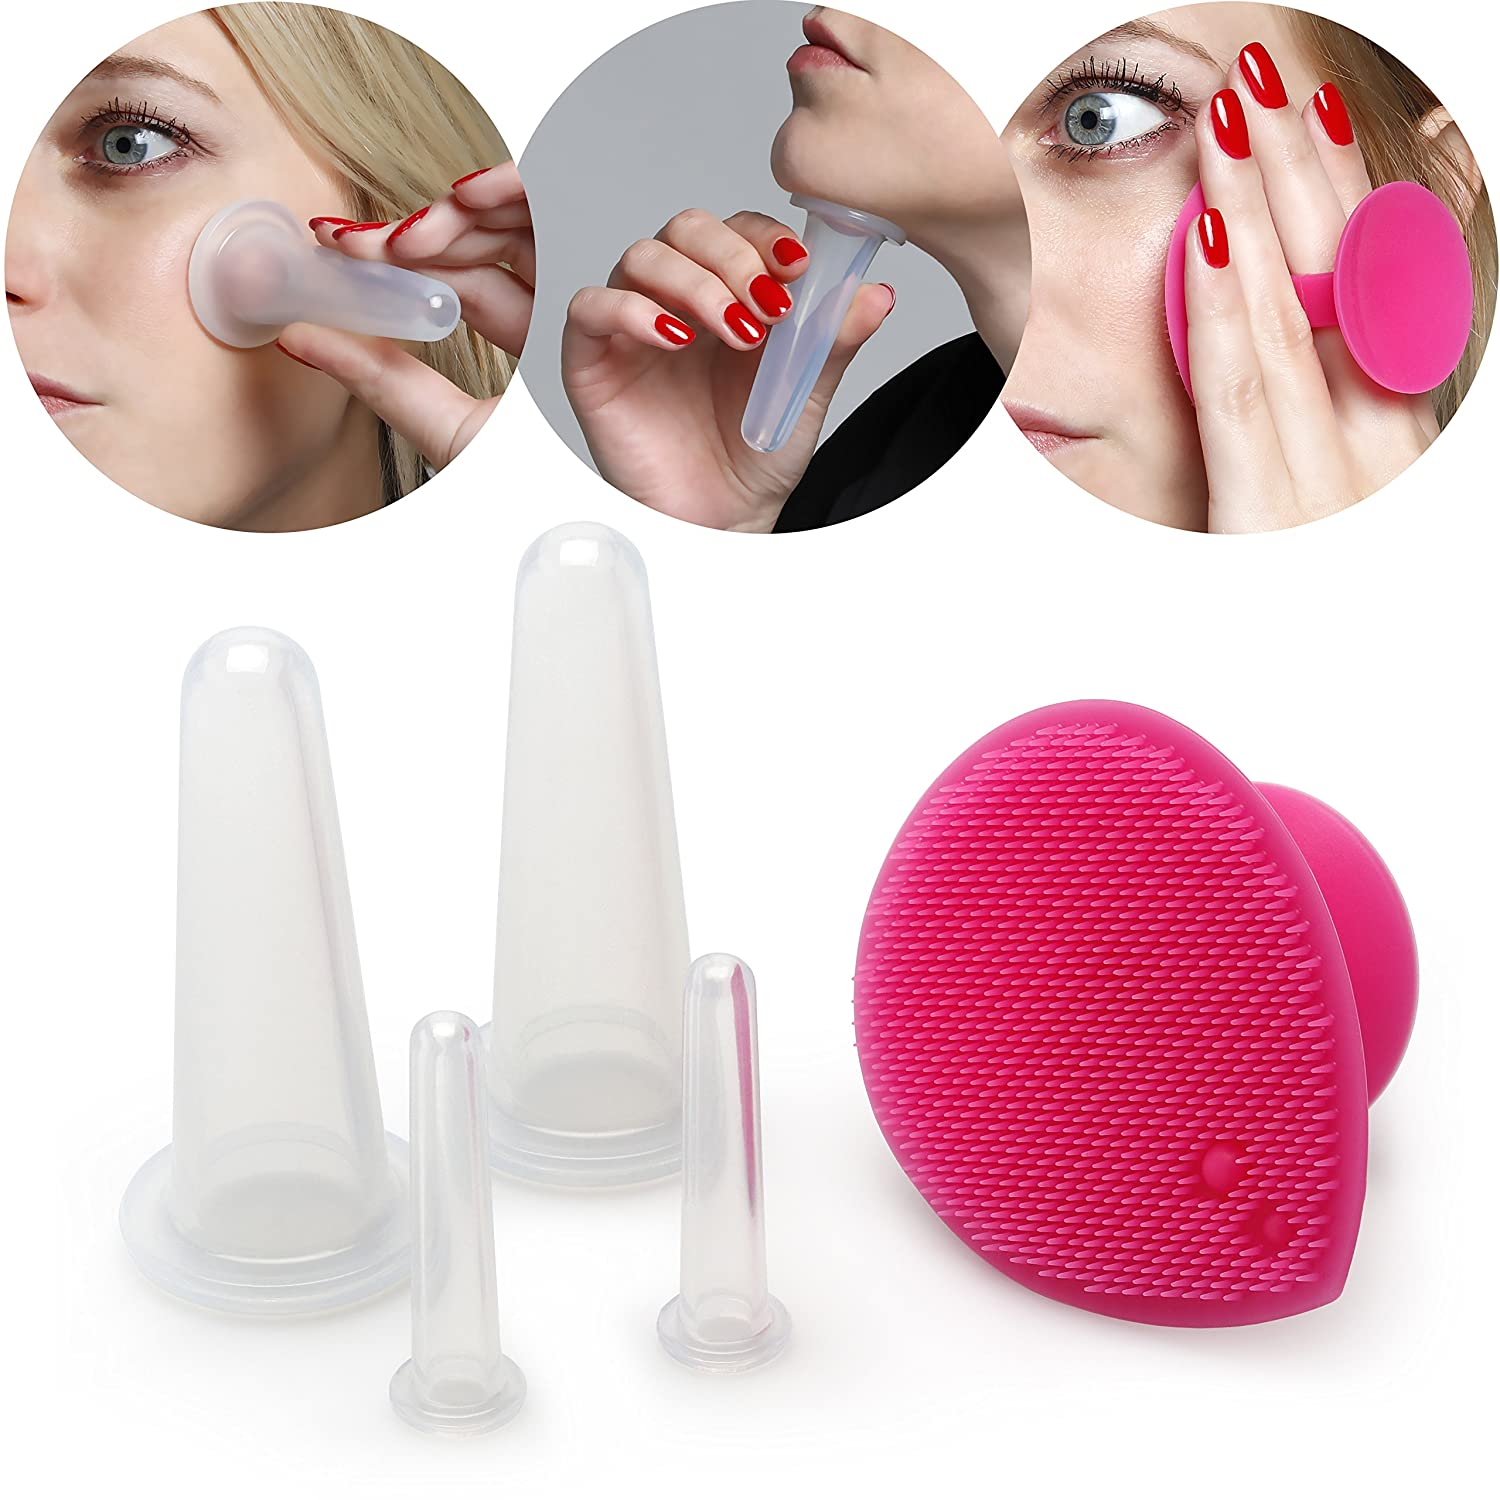 Lunata 4x Anti Cellulite Massage Cup, suction cup, cupping glass against orange peel skin, vacuum massager, silicone cups Timejam